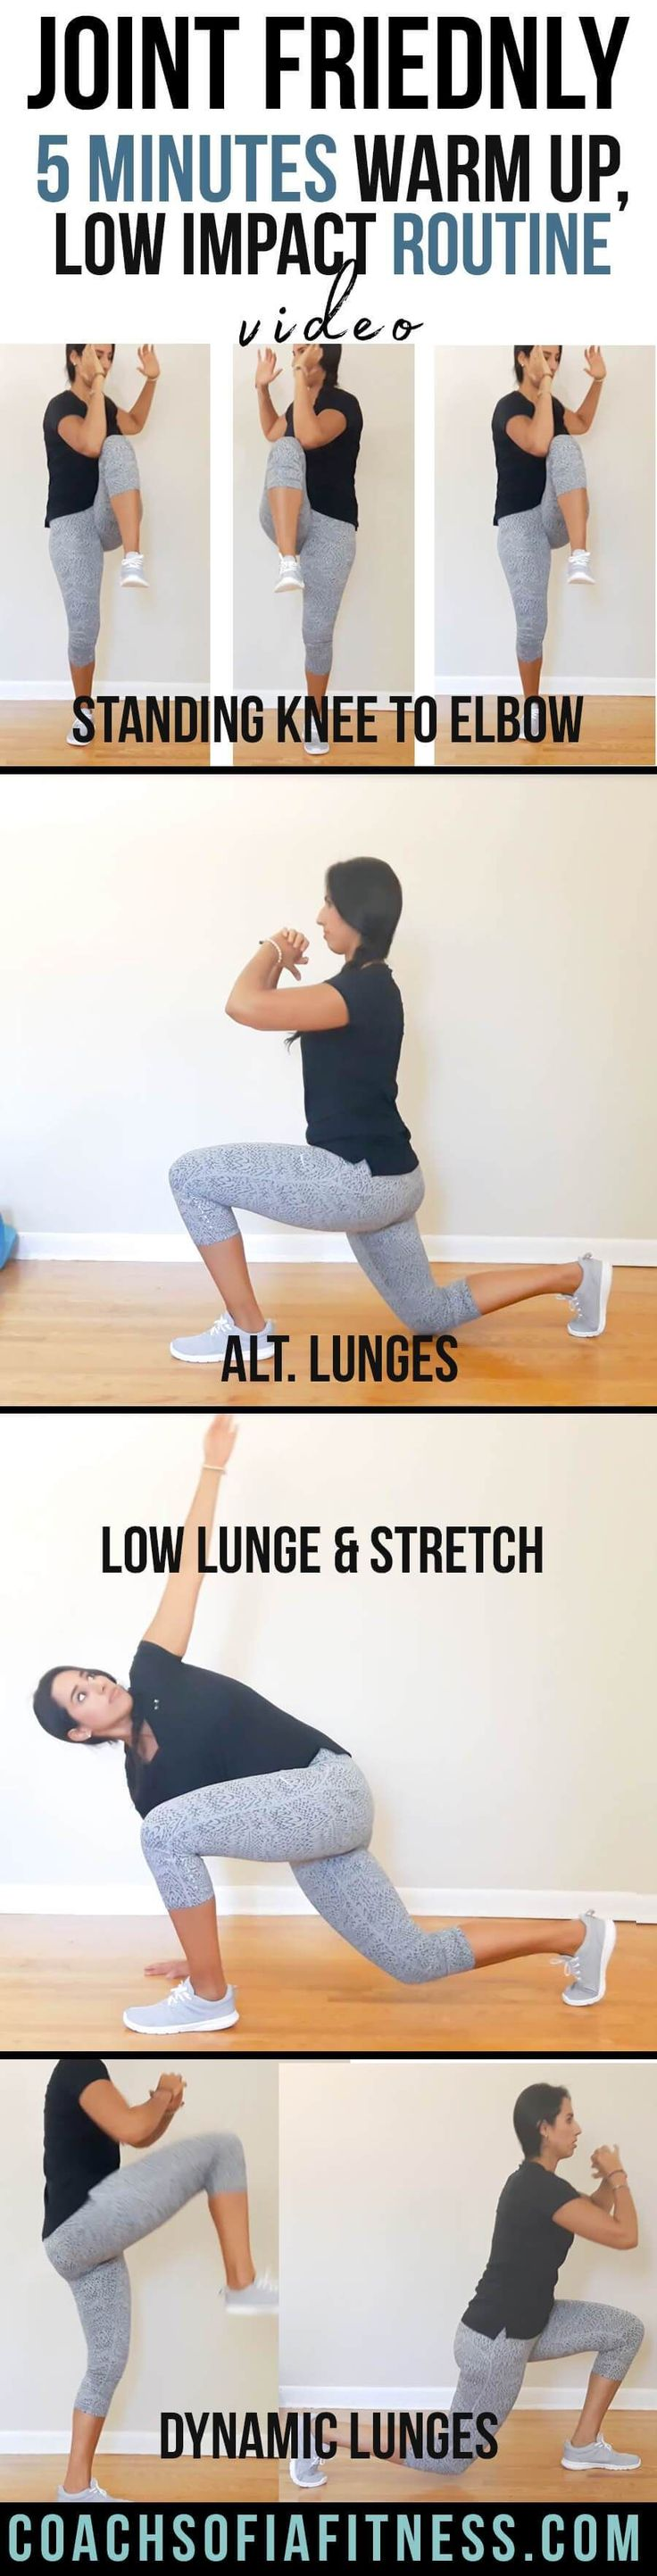 Check out this joint friendly warm-up routine if you have back pain or hip pain. It's super low impact and you can complete it under 5 minutes! Topics: sciatica, piriformis syndrome exercises, low back pain, warm-up routine, low impact exercises.